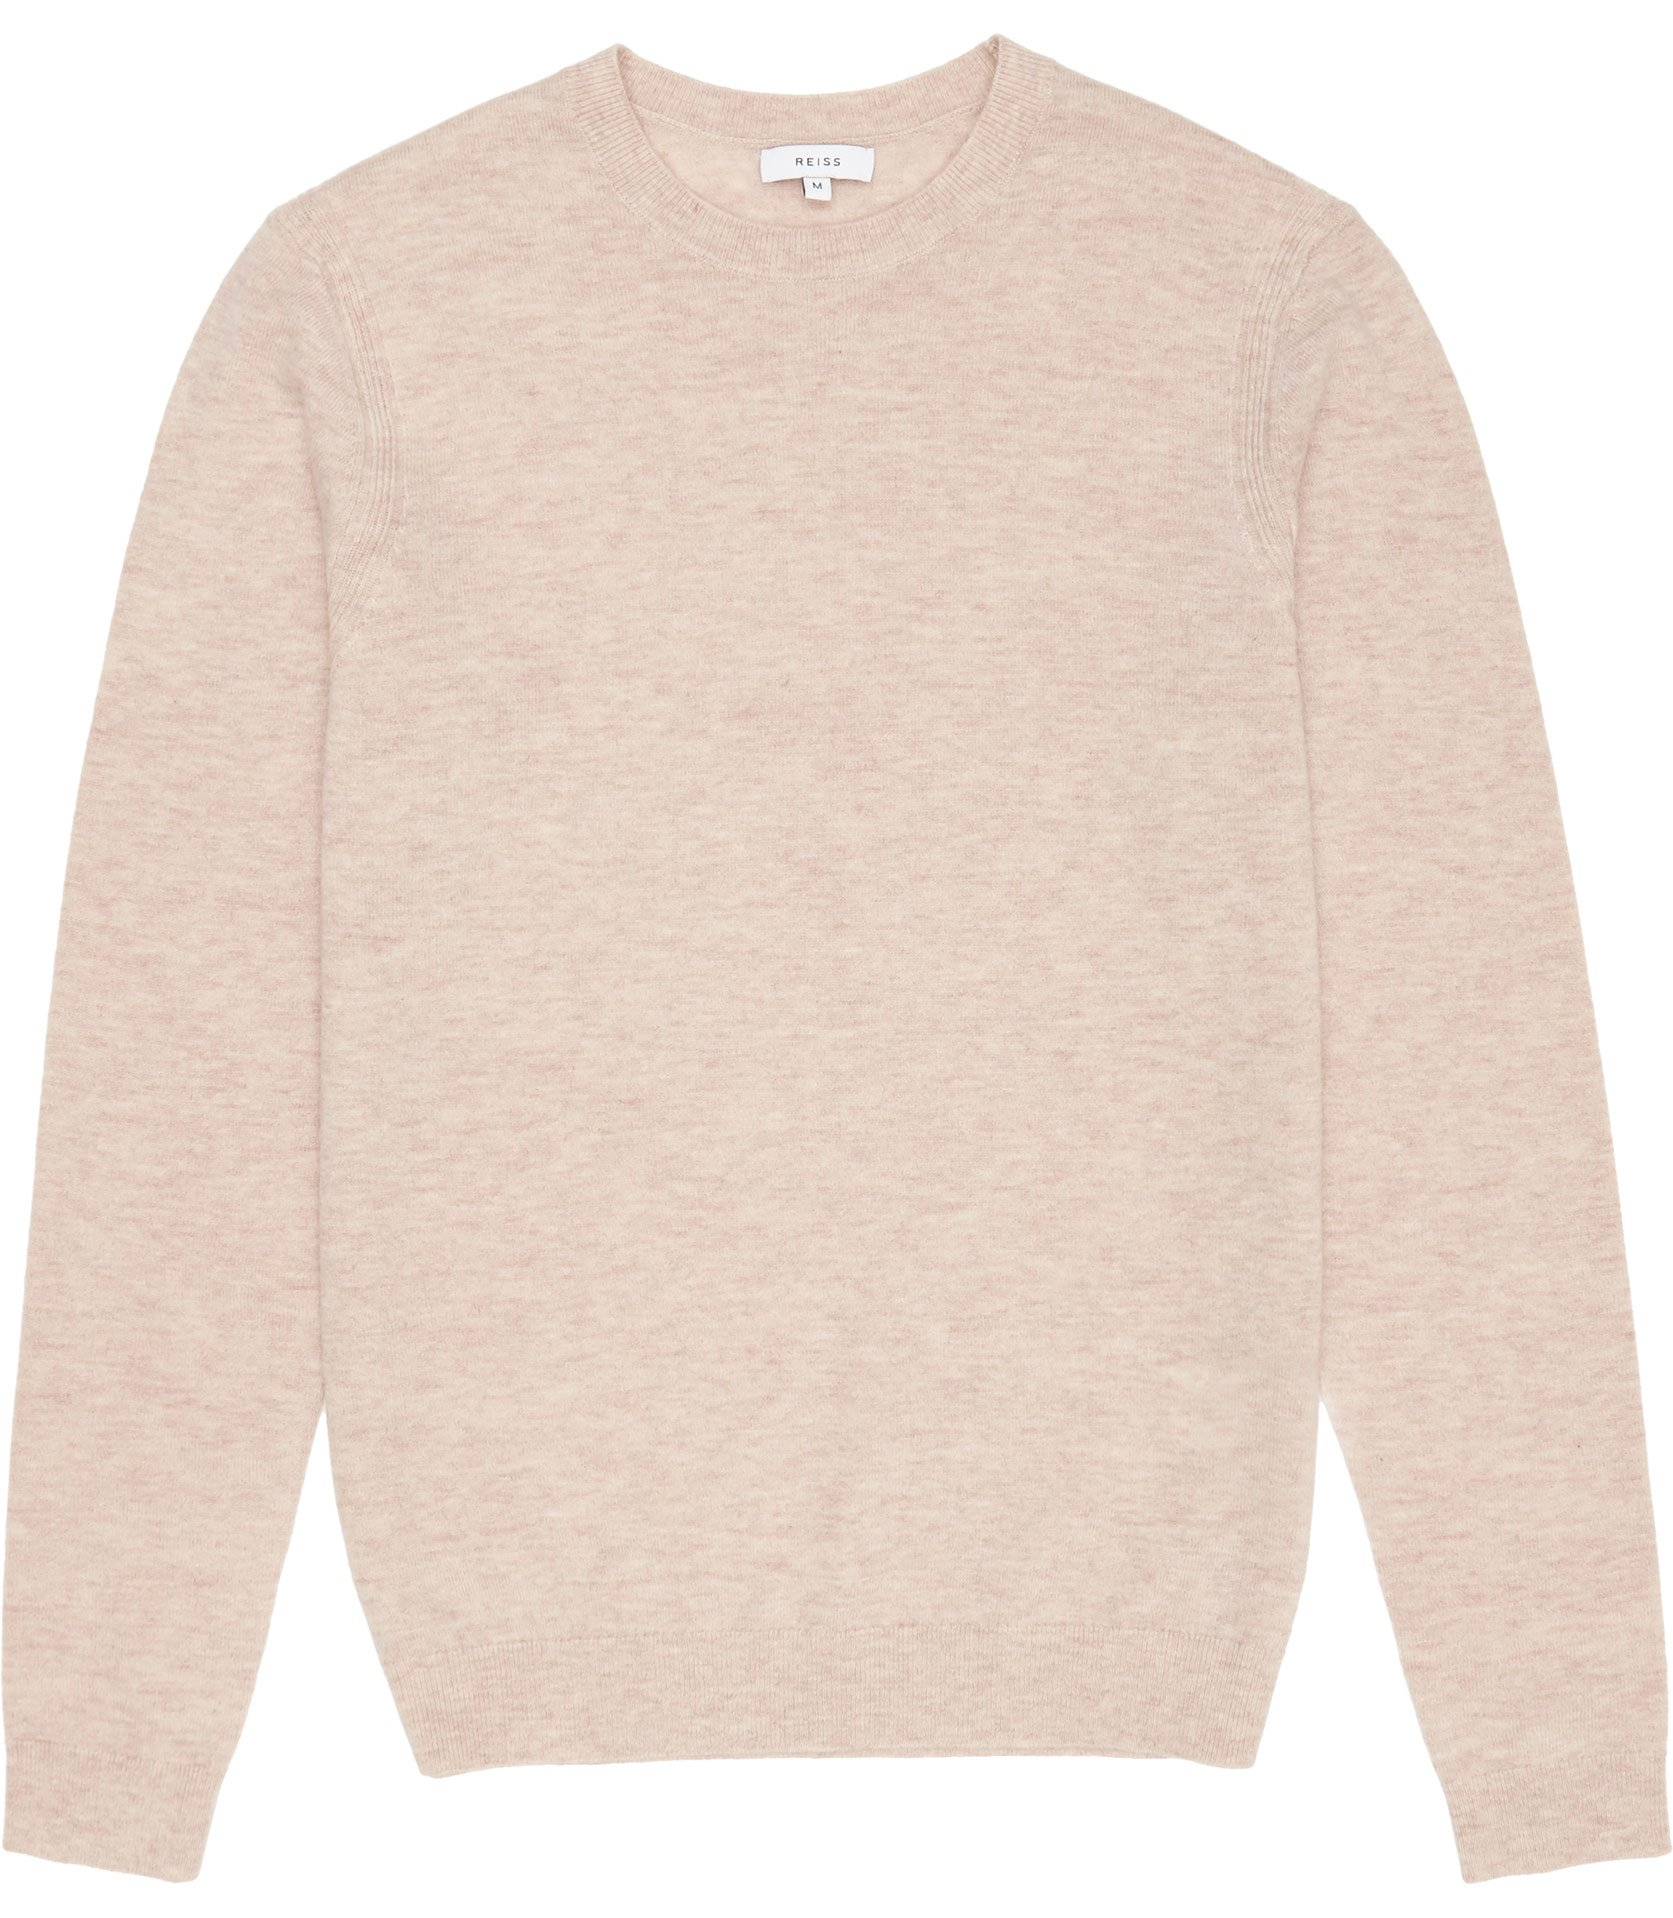 Reiss Tea Rose Charmer Wool And Cashmere Jumper